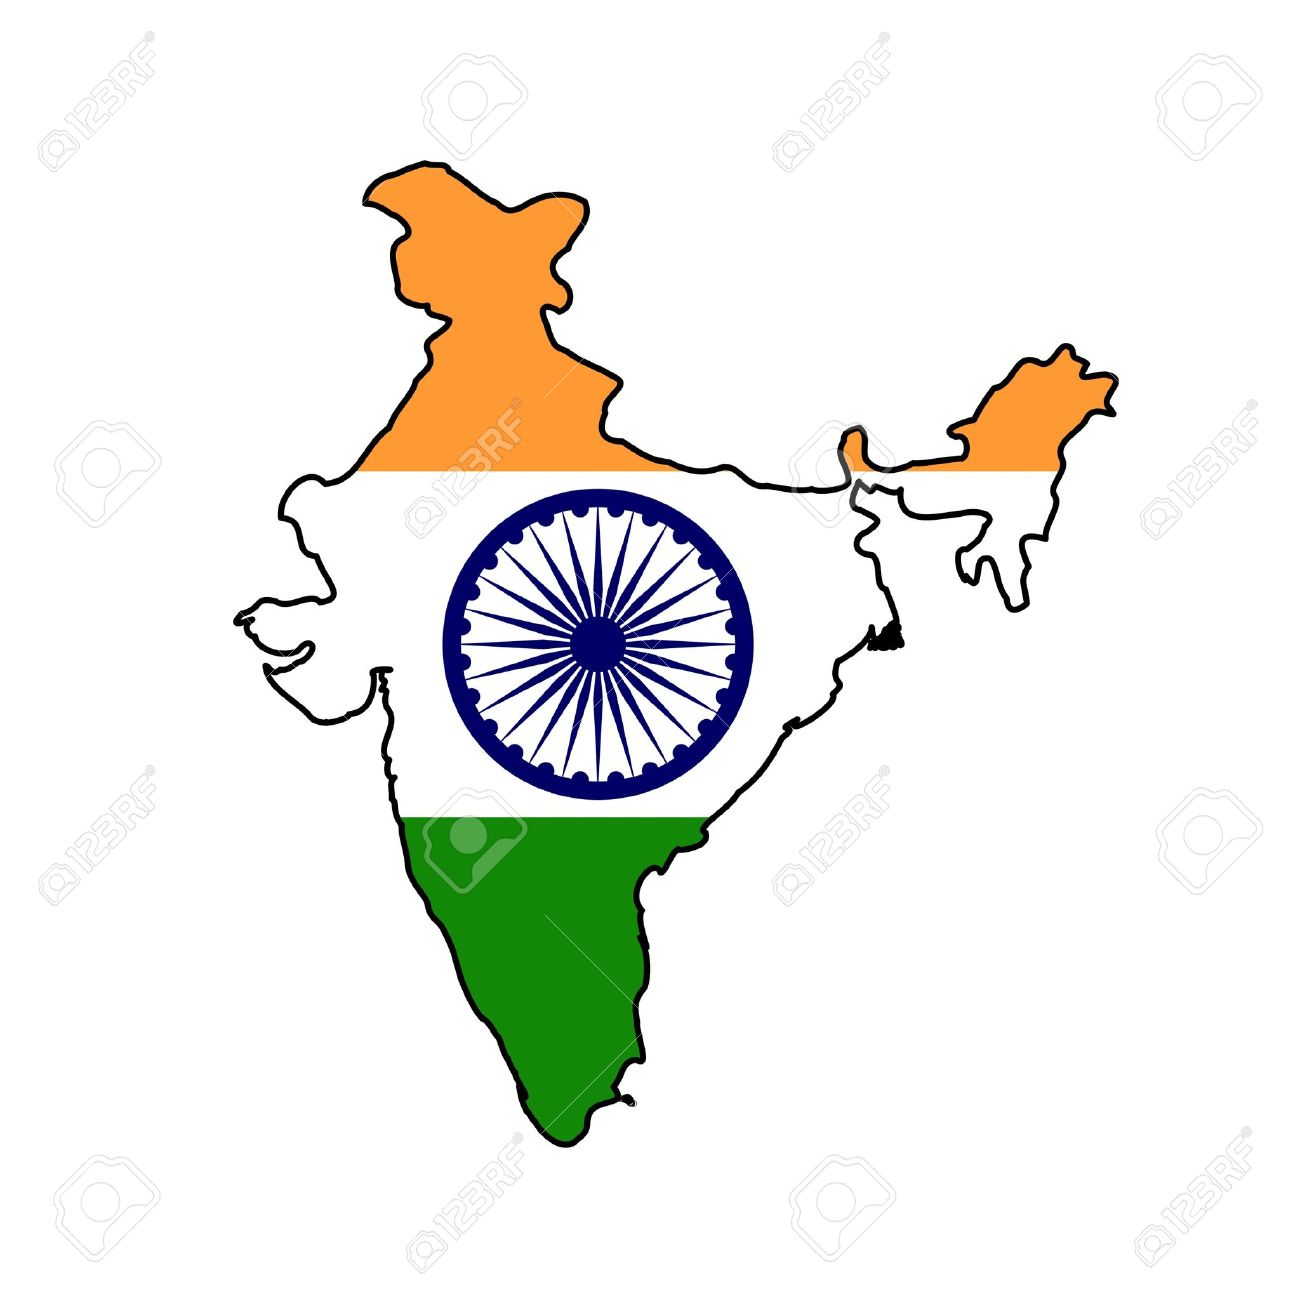 Illustration of the India flag on map of country; isolated on white background. - 9320566